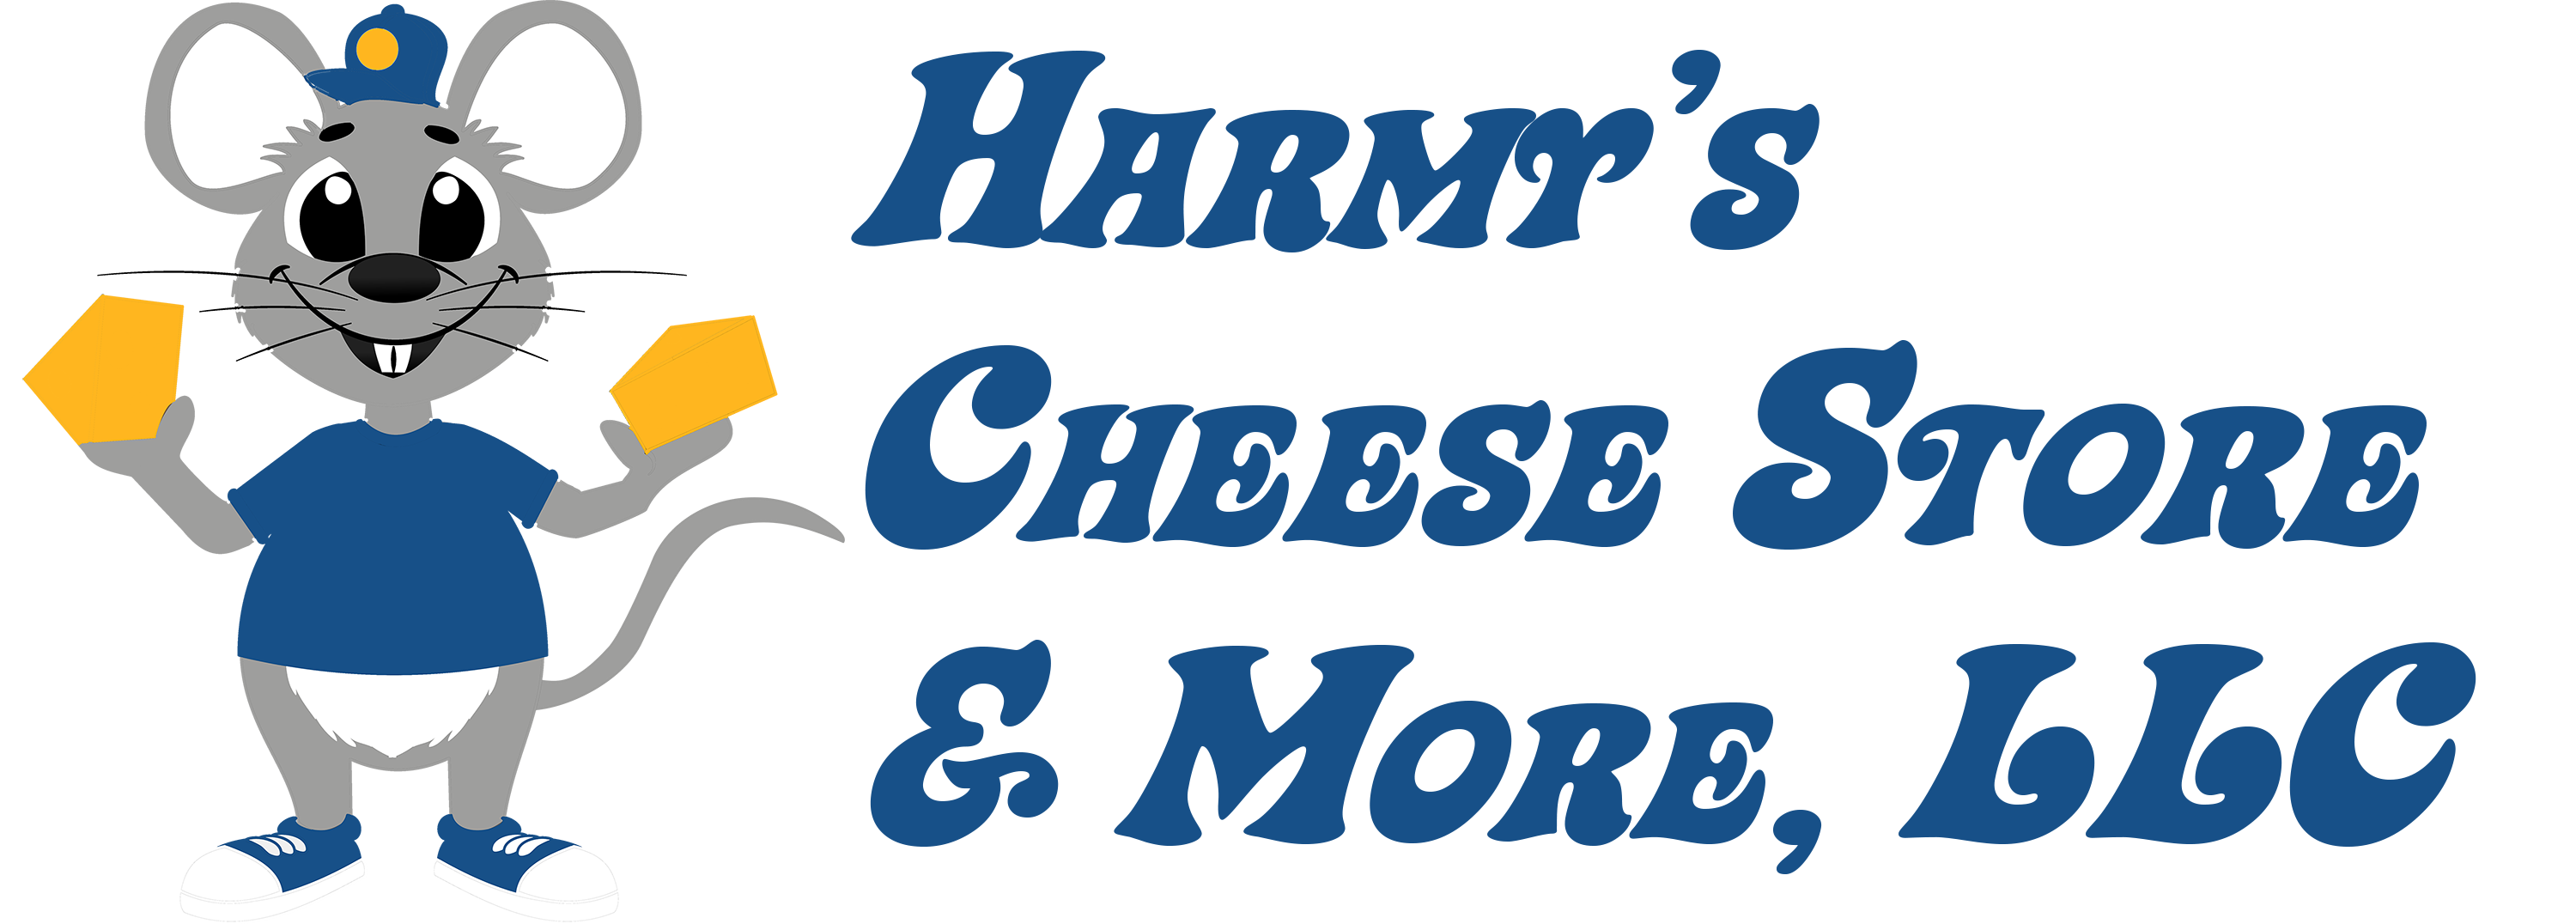 More about Harmy's Cheese Store and More